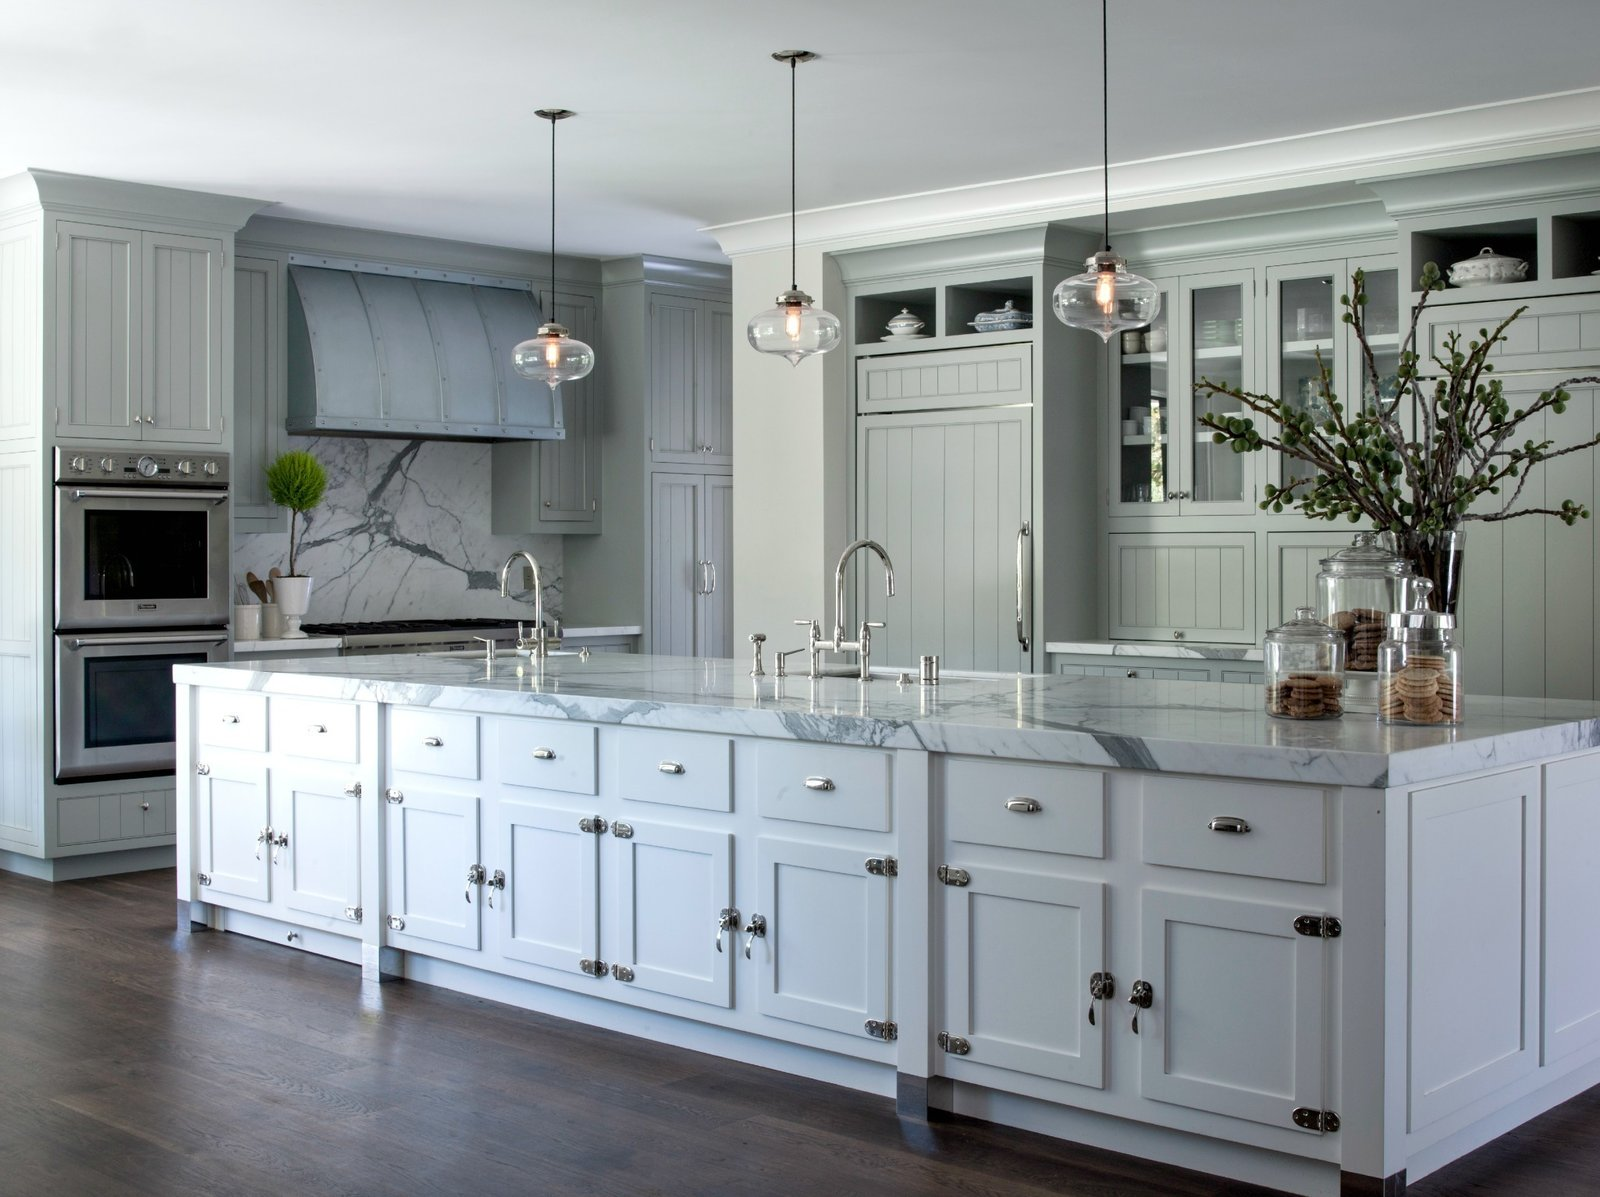 Modern Farmhouse Incorporates Contemporary Kitchen Island